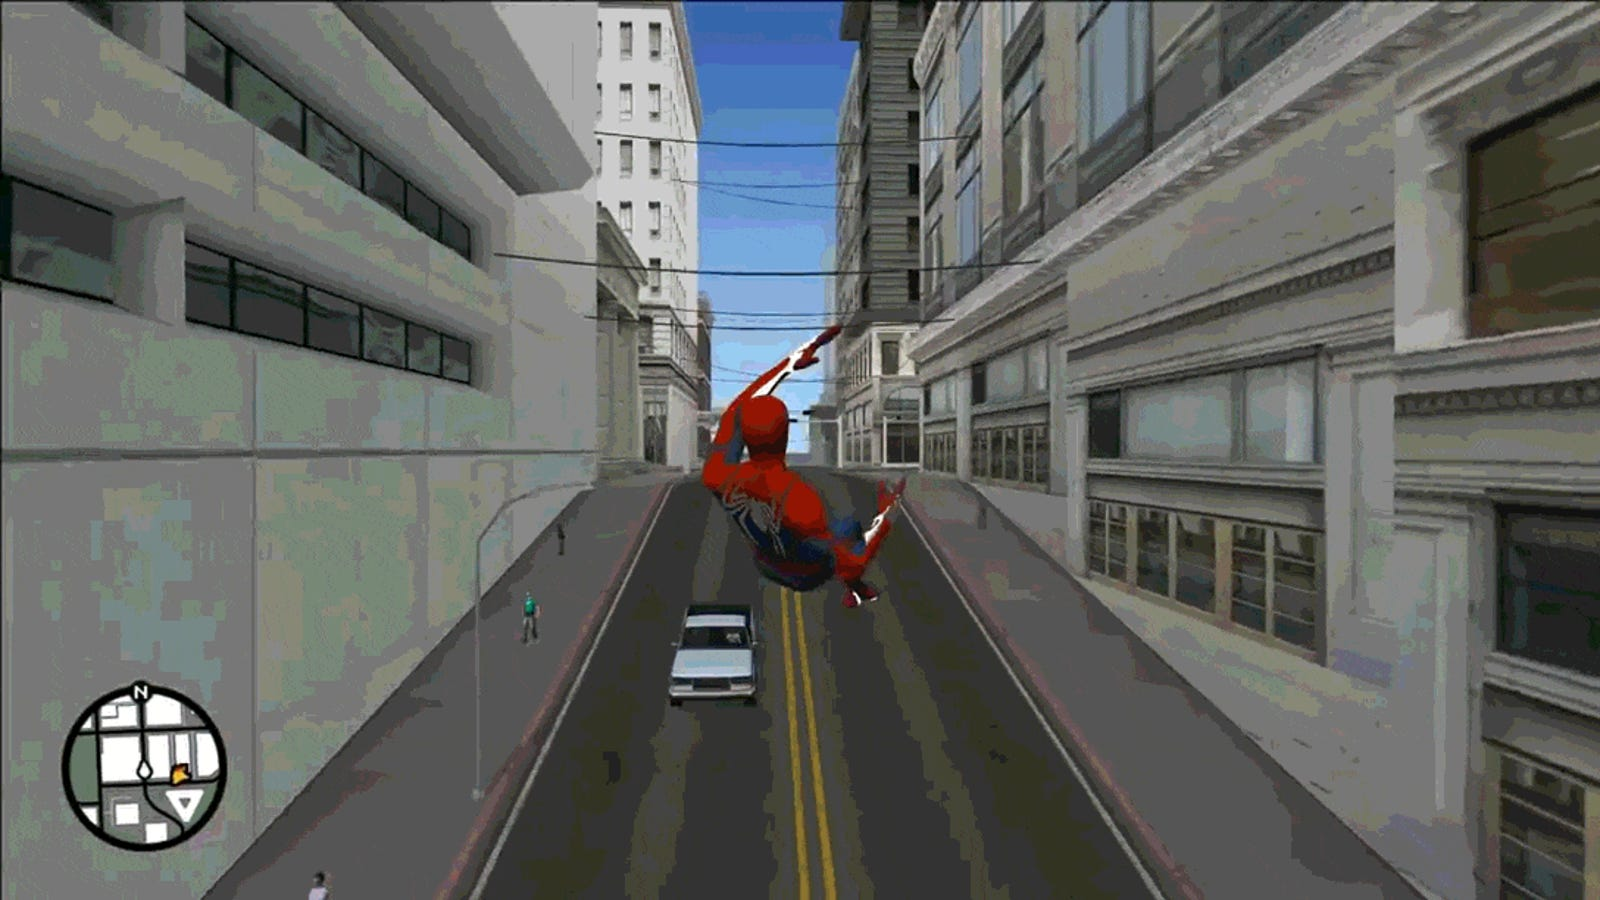 A Modder Has Spent Years Adding Spider-Man Into GTA San Andreas